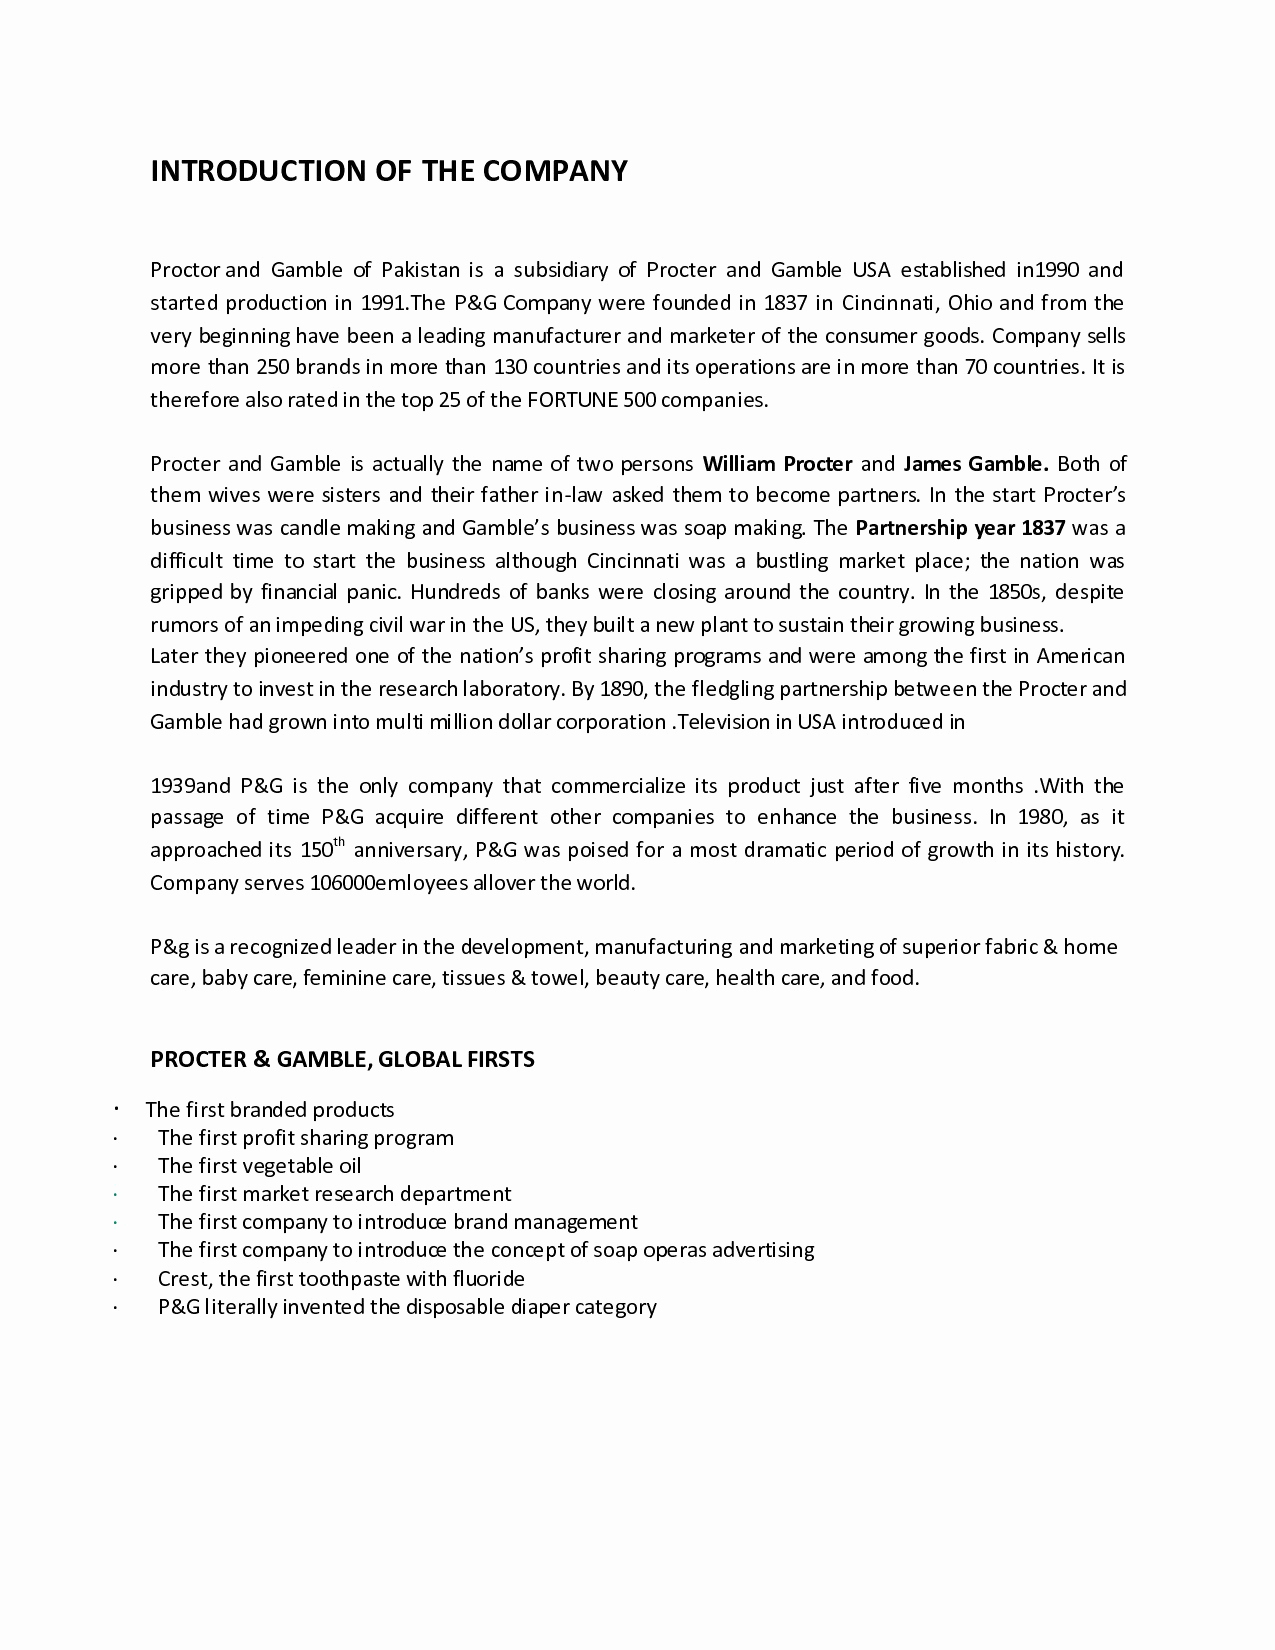 Ema Cover Letter Template - Sample Email Cover Letter with Resume Unique Cover Letter Template